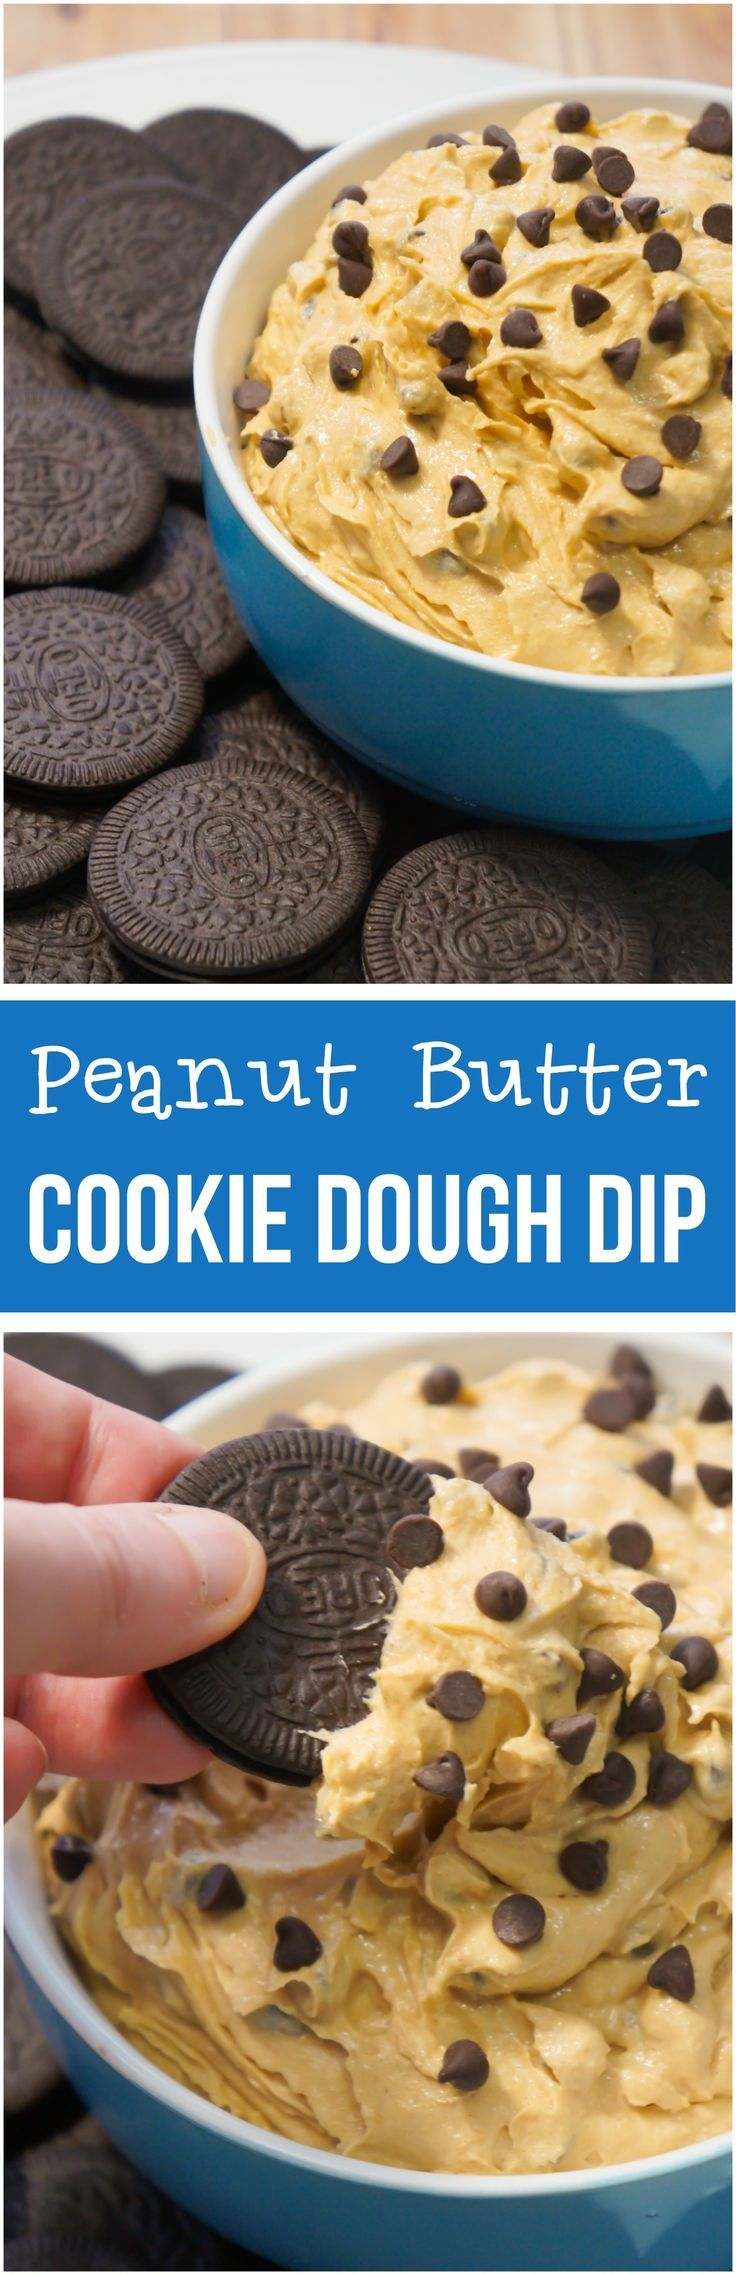 Peanut Butter Cookie Dough Dip is a no bake dessert recipe perfect for parties. This edible cookie dough dip is loaded with mini chocolate chips and served with Oreo cookies.